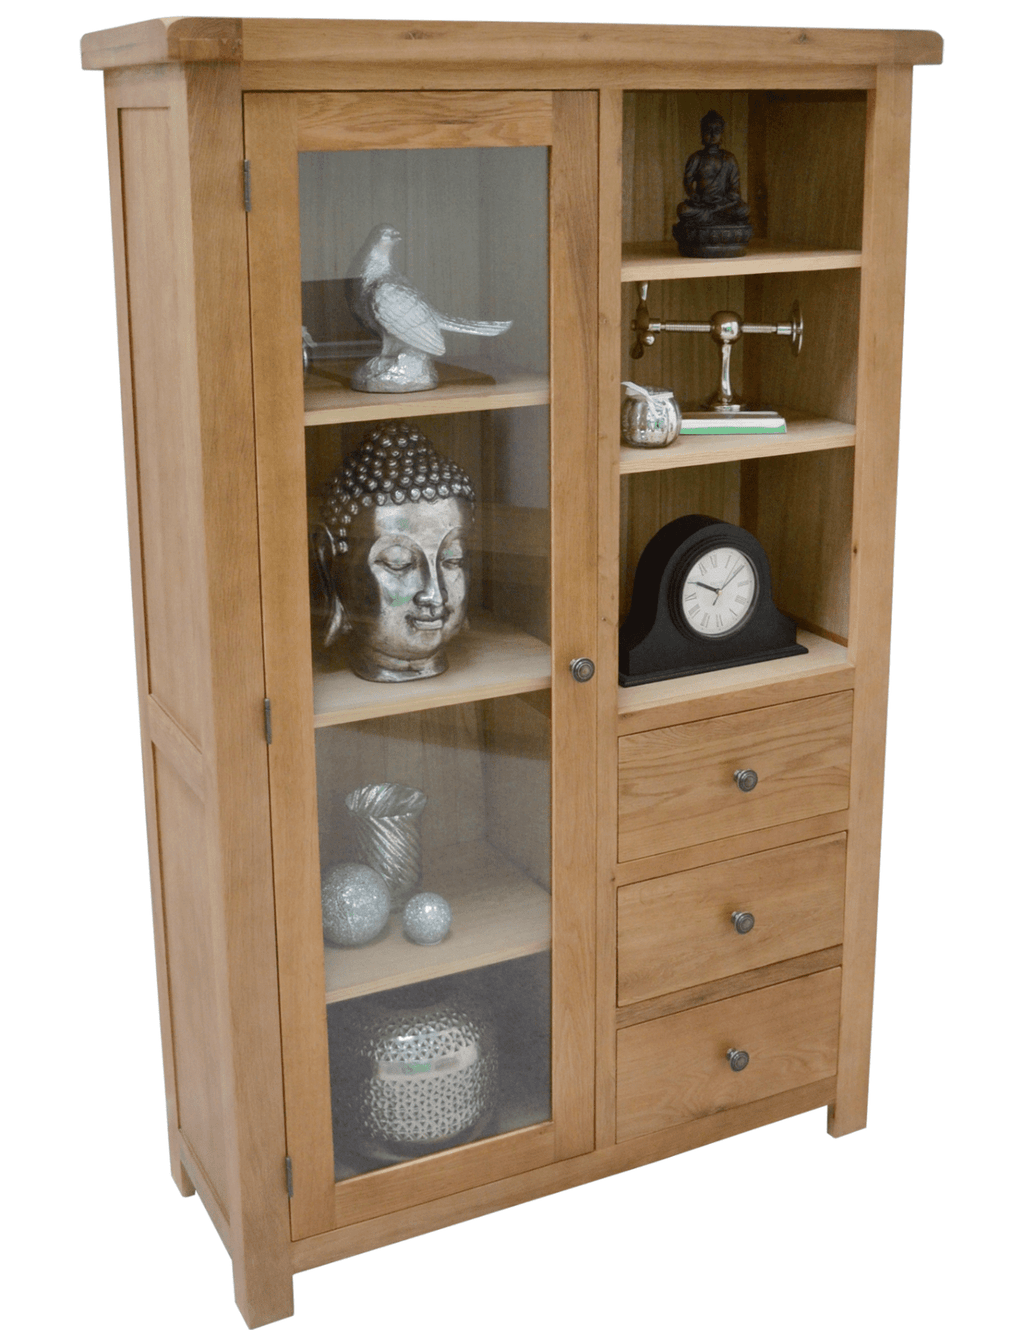 Dorset Oak Combination Display Cabinet With Storage And Glass Door - Oak Village